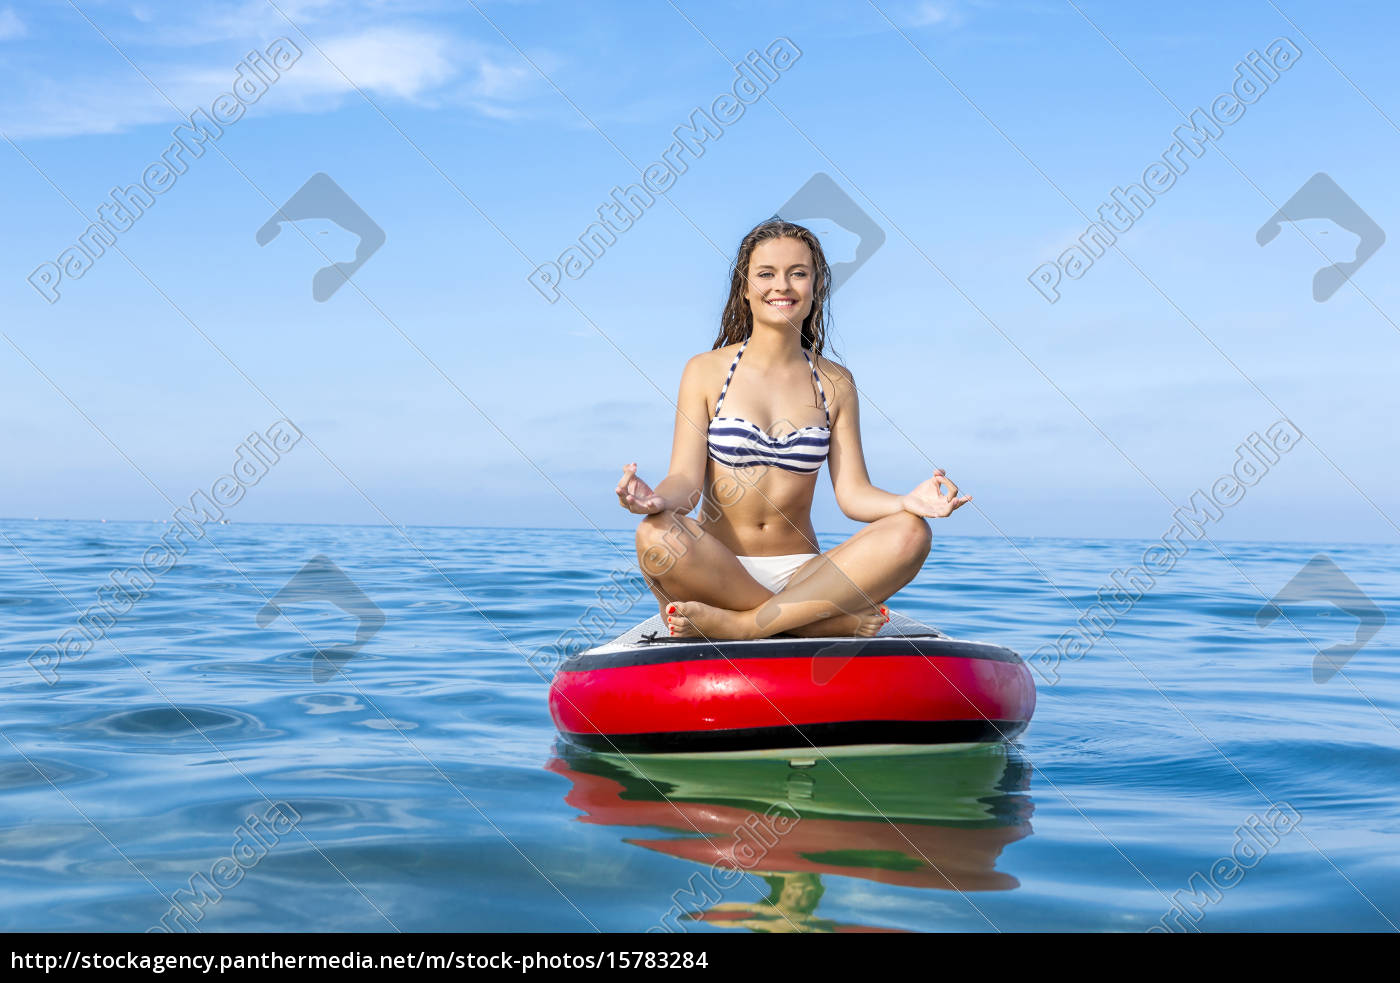 woman, practicing, paddle - 15783284